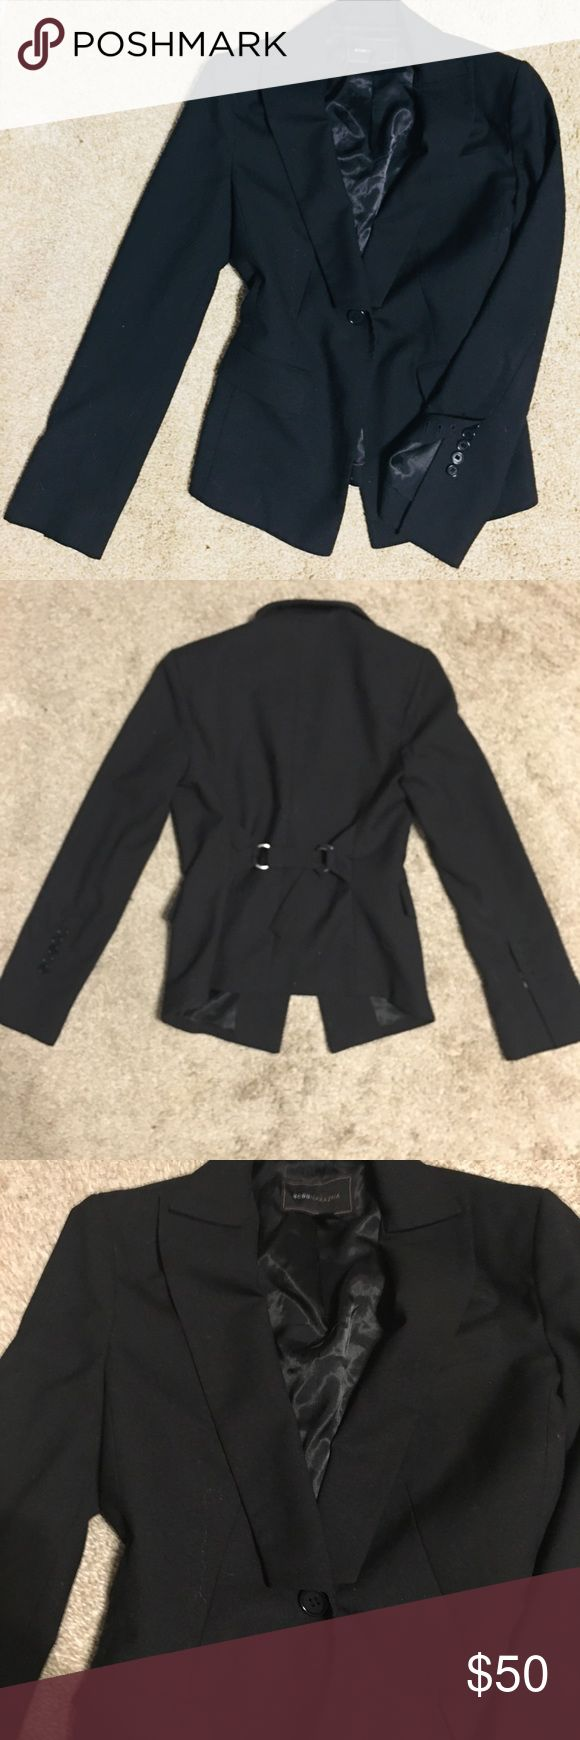 BCBG MAX AZRIA SINGLE BUTTON BLACK BLAZER XS ▪️Brand: BCBG MAX AZRIA ▪️Style: Black Single Button Adjustable Waist Blazer. Semi Flare Sleeves. Very chic!   Worn maybe 5x Like new excellent condition! ▪️Size: XS ▪️Material: Shell: Polyester Rayon Spandex / Lining: Polyester Viscose   ▫️Shop with confidence! I am a Top-Rated 5 Star Seller and Poshmark Ambassador.  ▫️Feel free to comment below with any questions and concerns before buying 💕 ▫️THANKS • Happy Poshing!▫️ BCBGMaxAzria Jackets…